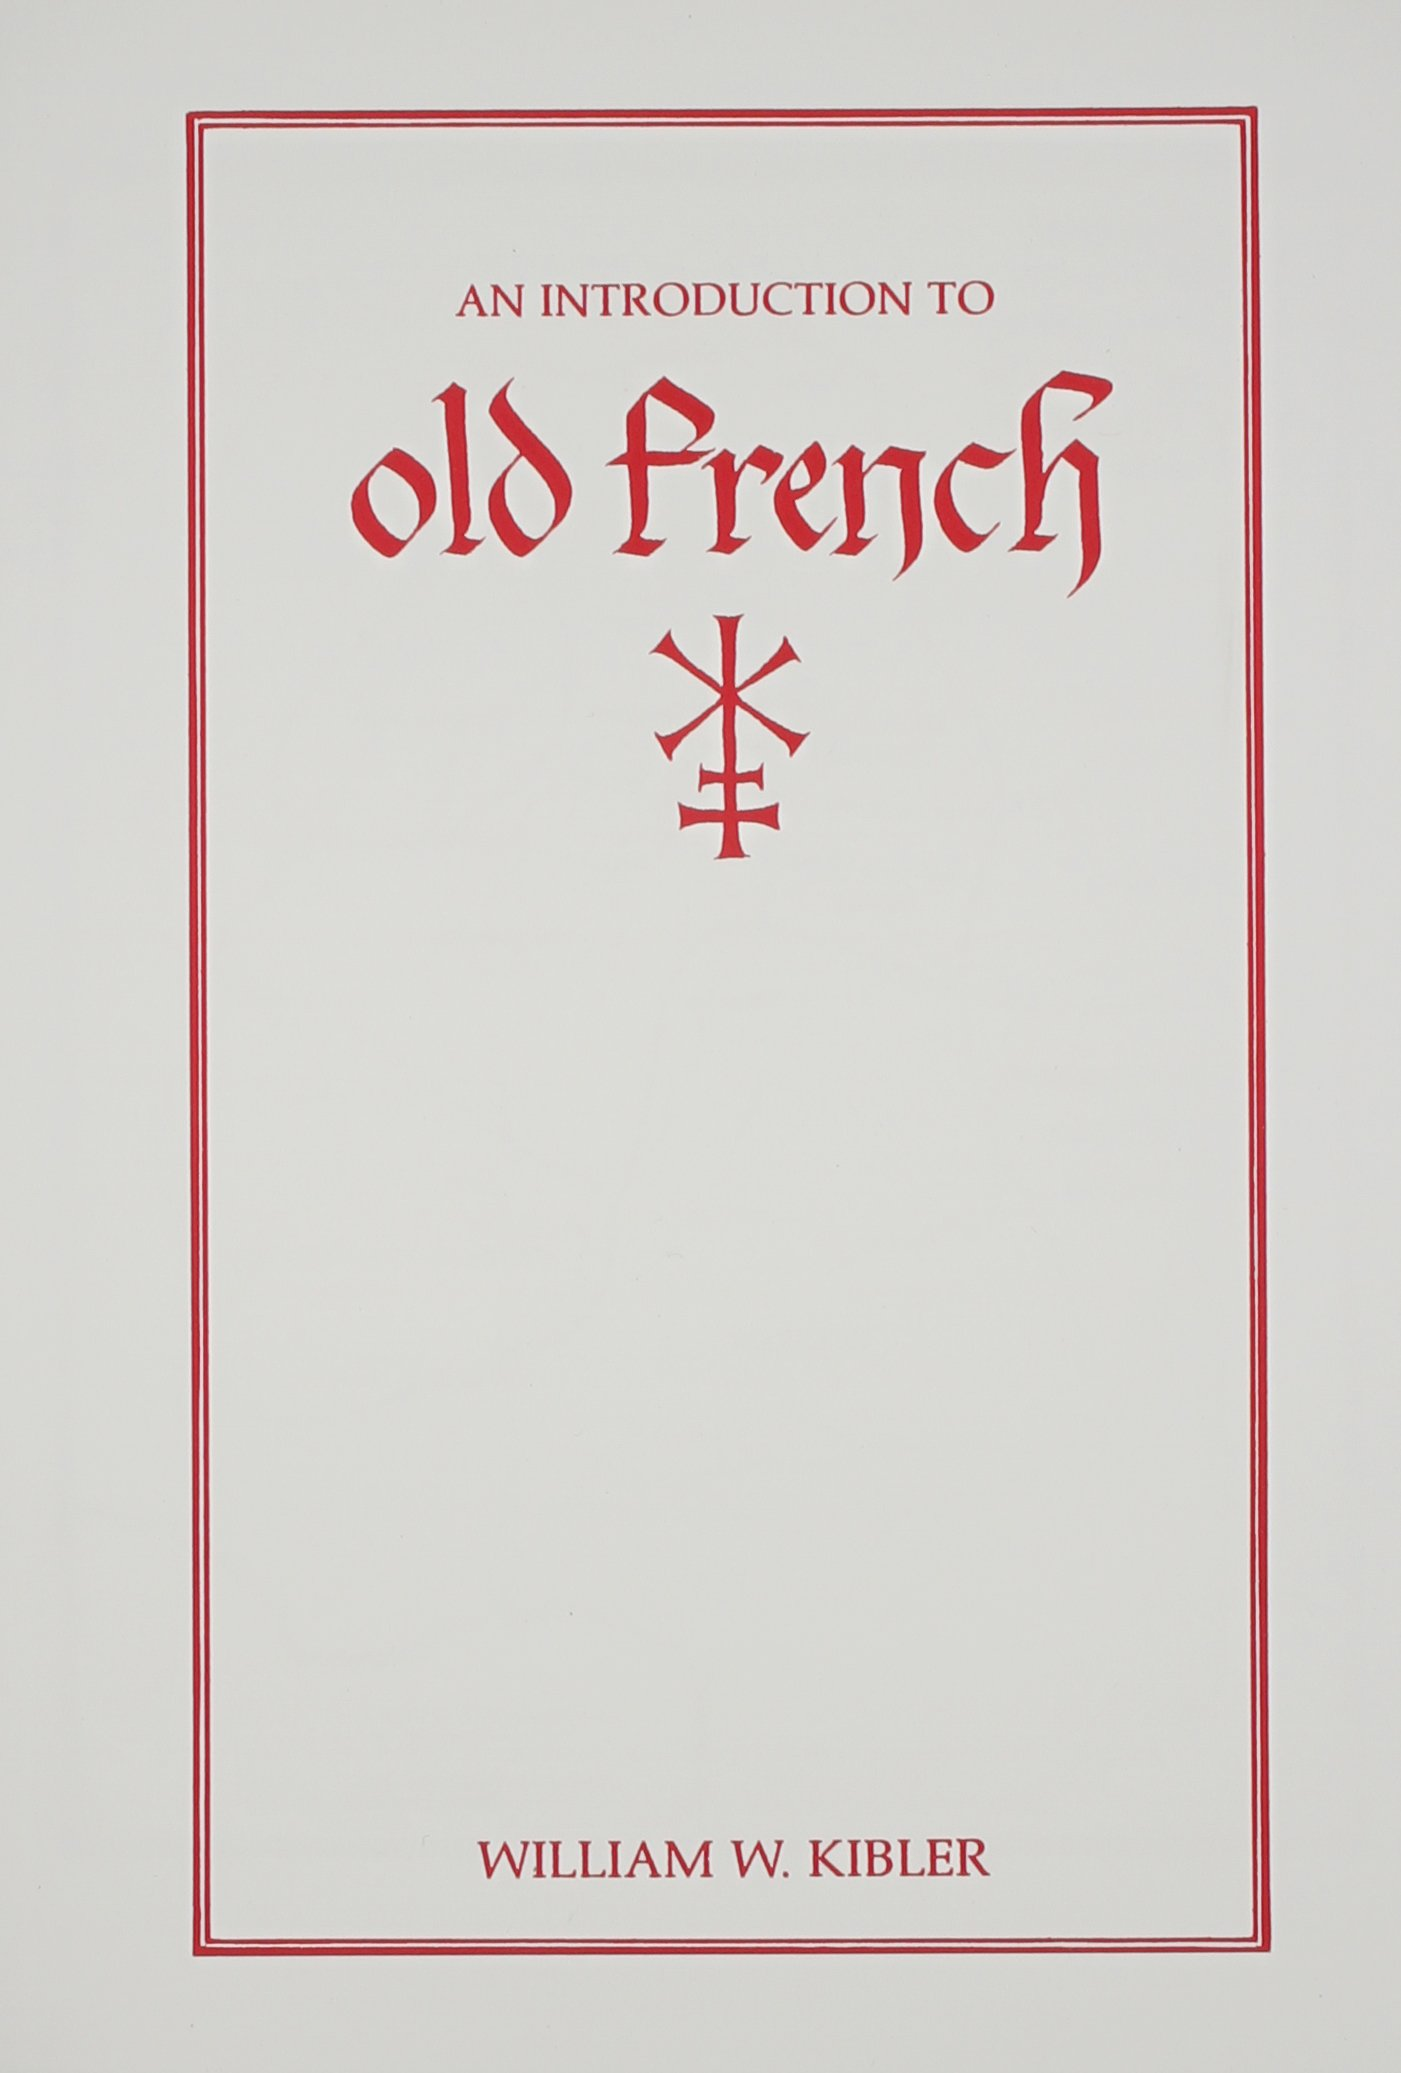 An Introduction to Old French (Introductions to Older Languages) by Brand: Modern Language Assn of Amer